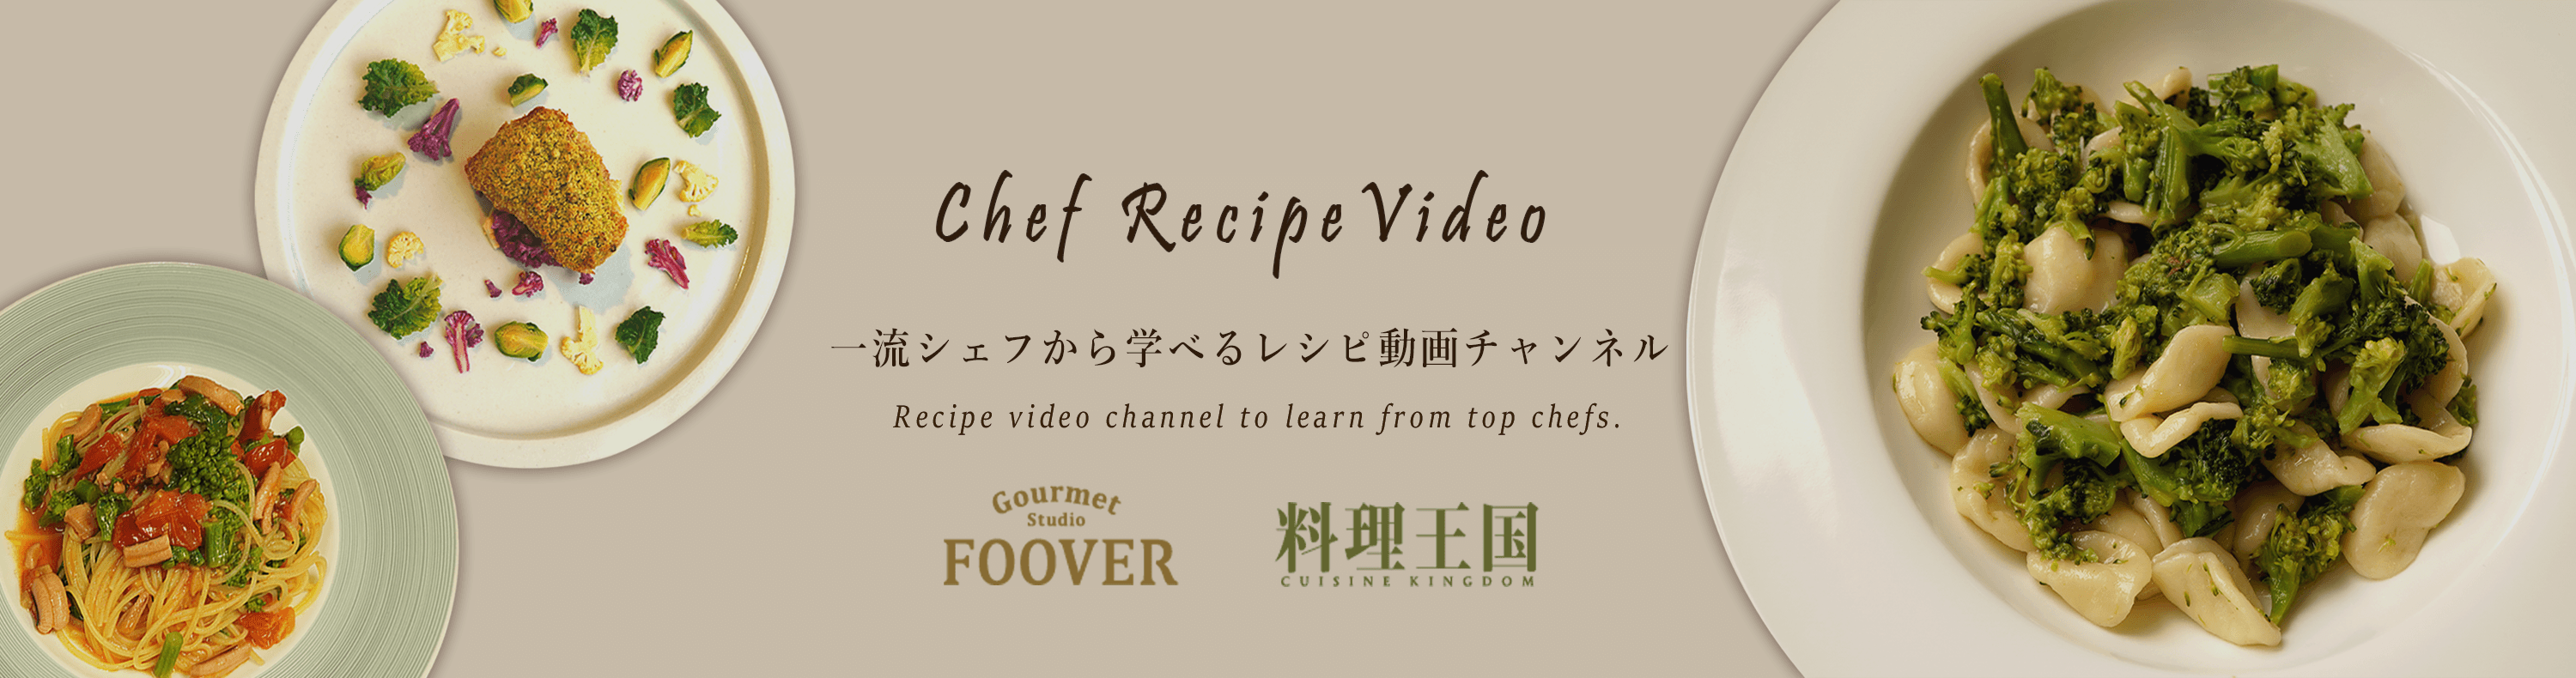 FOOVER Youtube